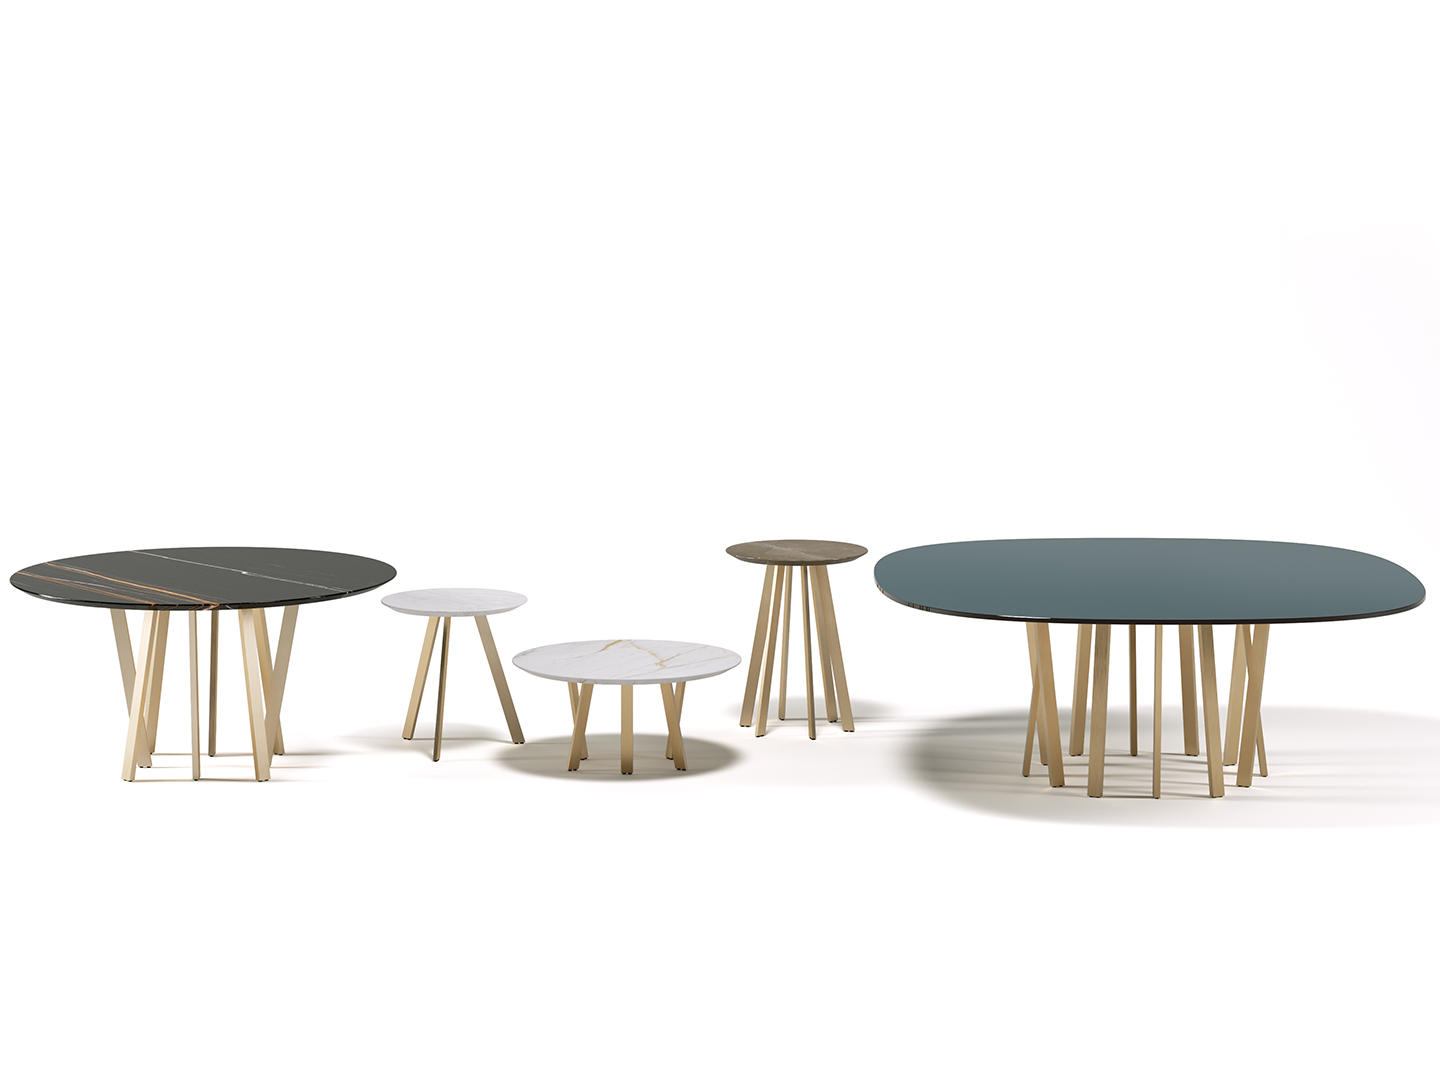 For Hall coffee table